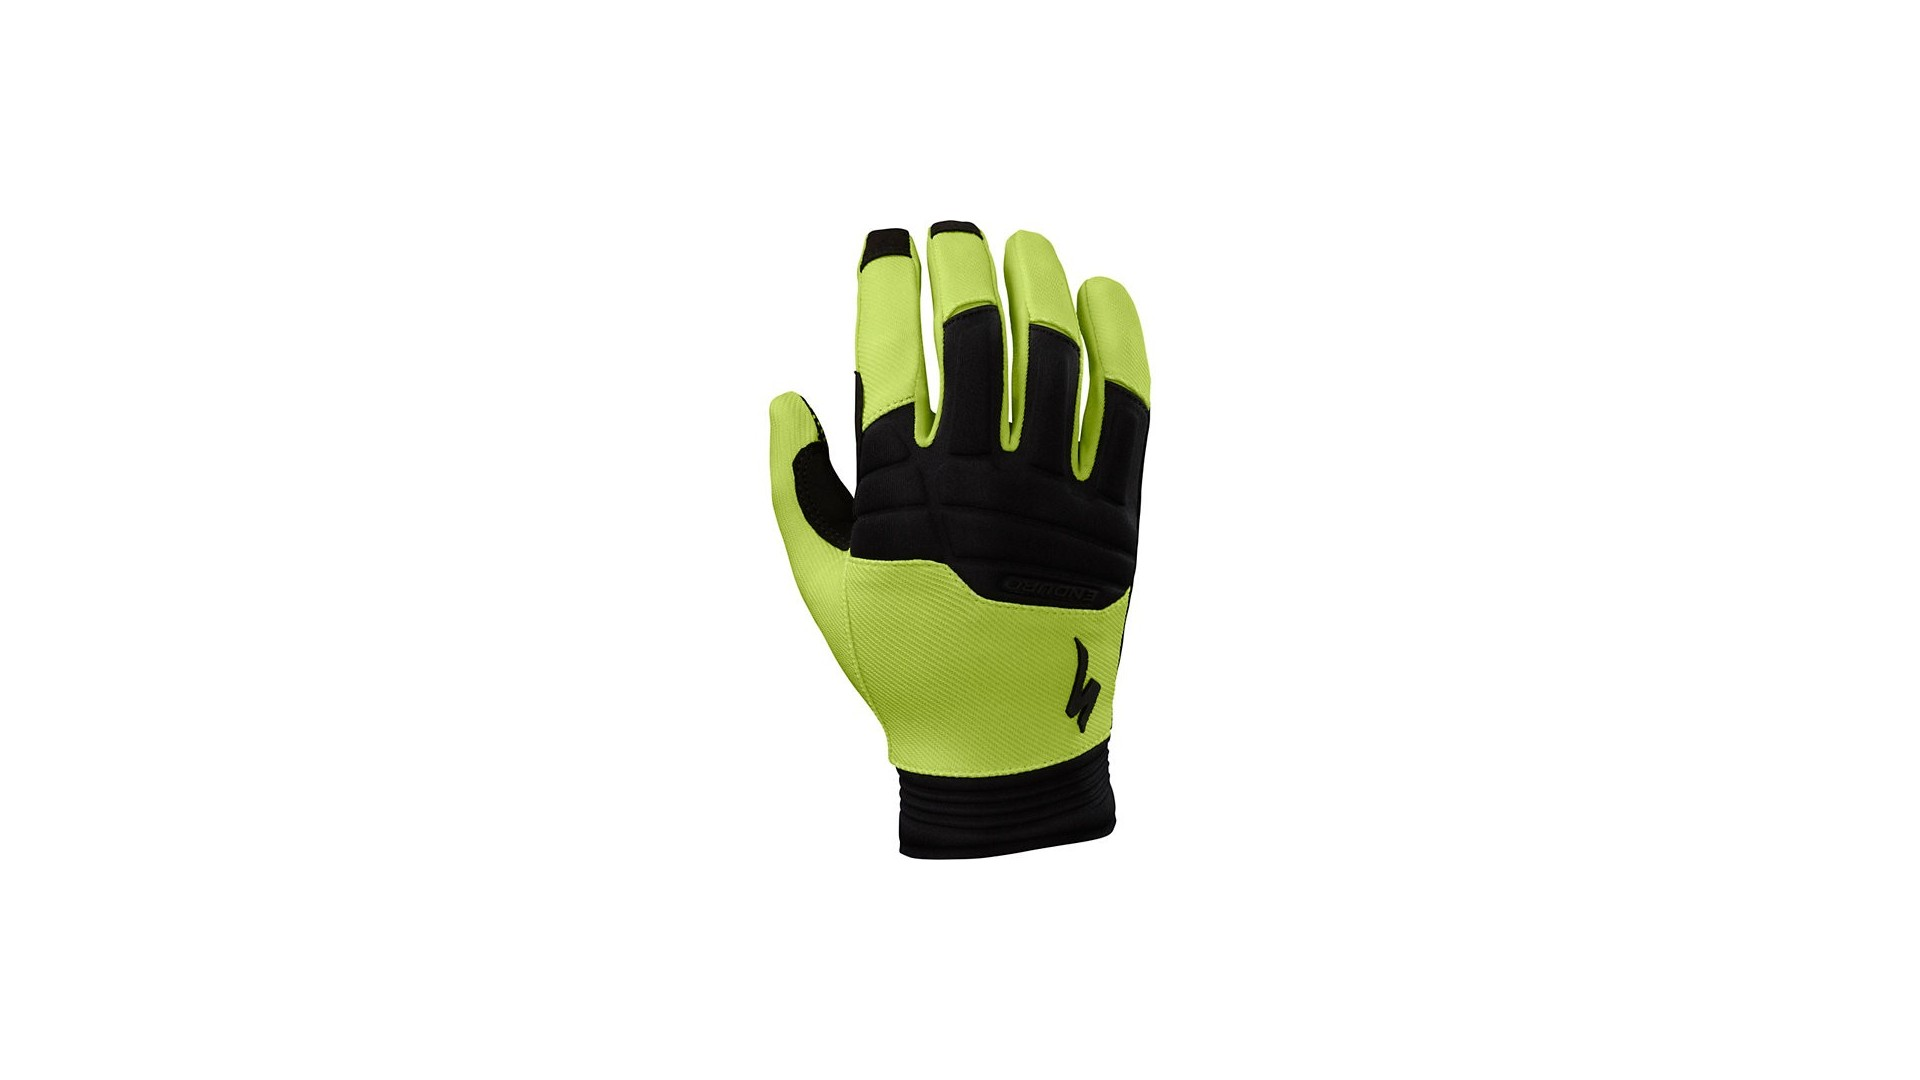 Enduro Guantes LF Specialized Body Geometry Verde Monster 1 IBKBike.es